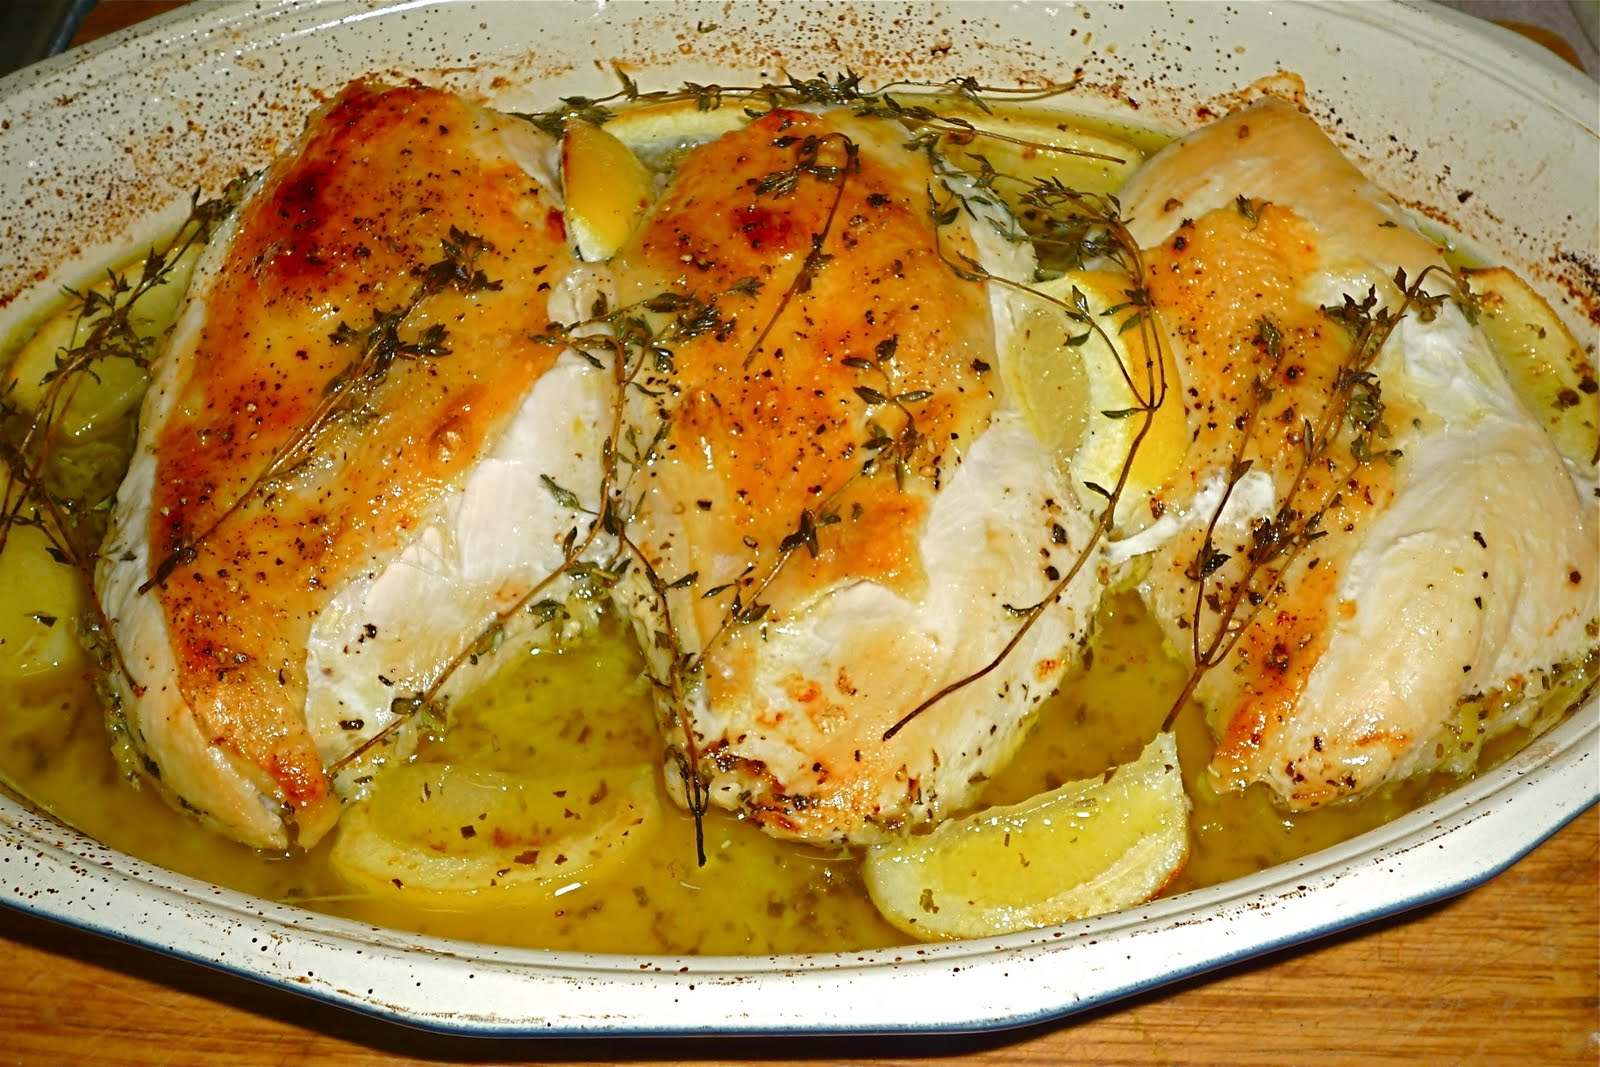 Roasted chicken breast recipes for dinner